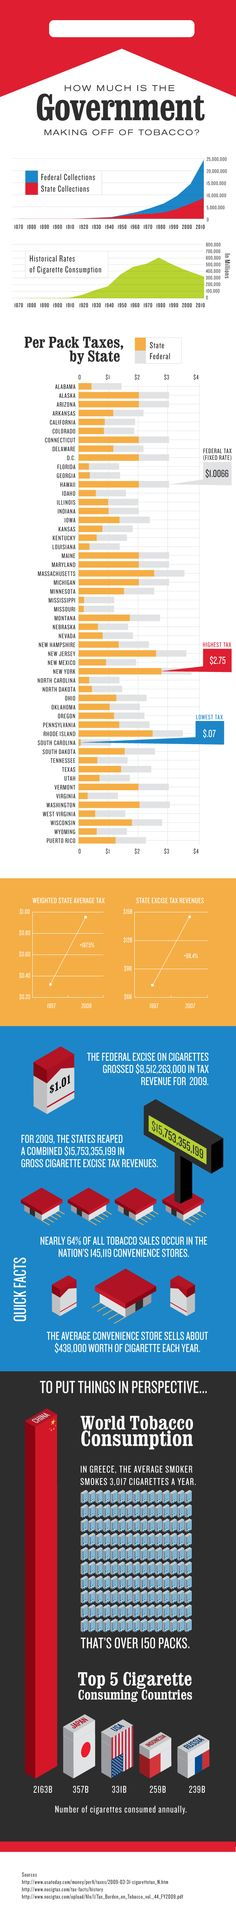 How Much is the Government Making off of Tobacco?